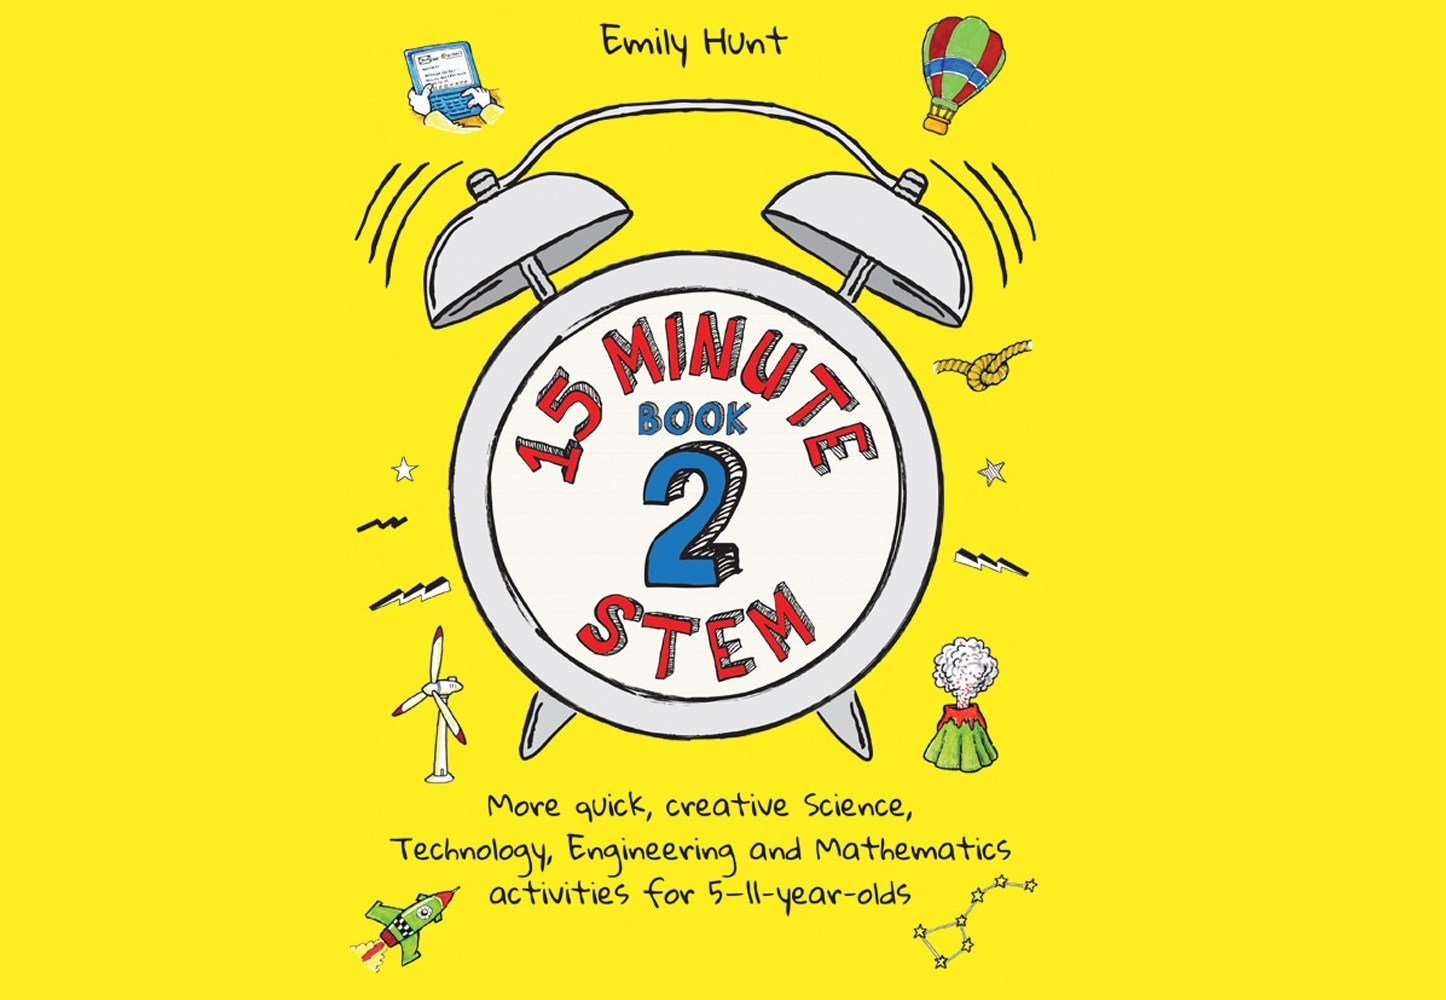 New 15 Minute STEM Book from Bristol-based Author